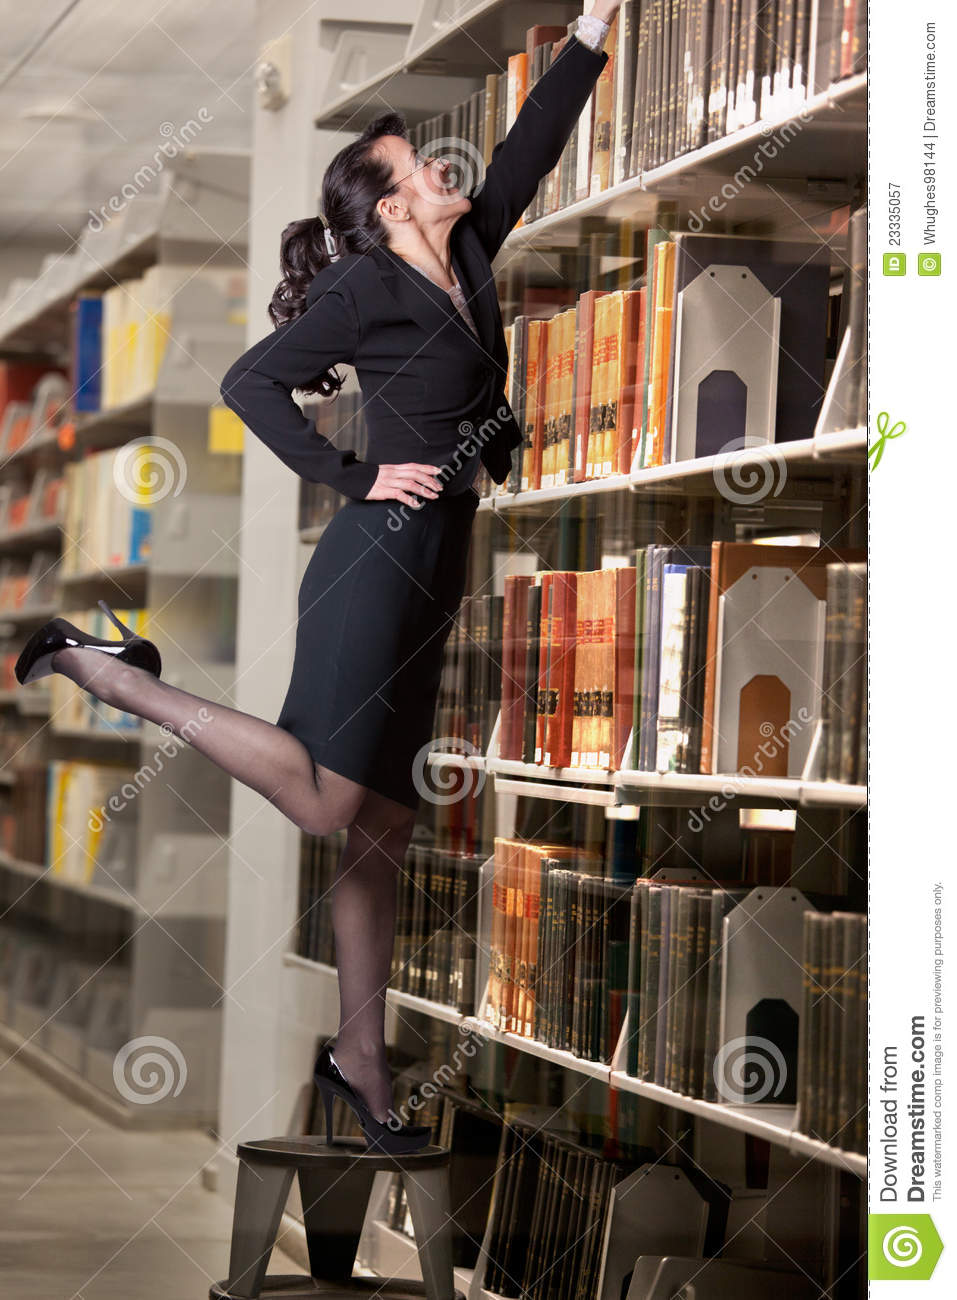 ... Reaching For A Book Royalty Free Stock Photography - Image: 23335057